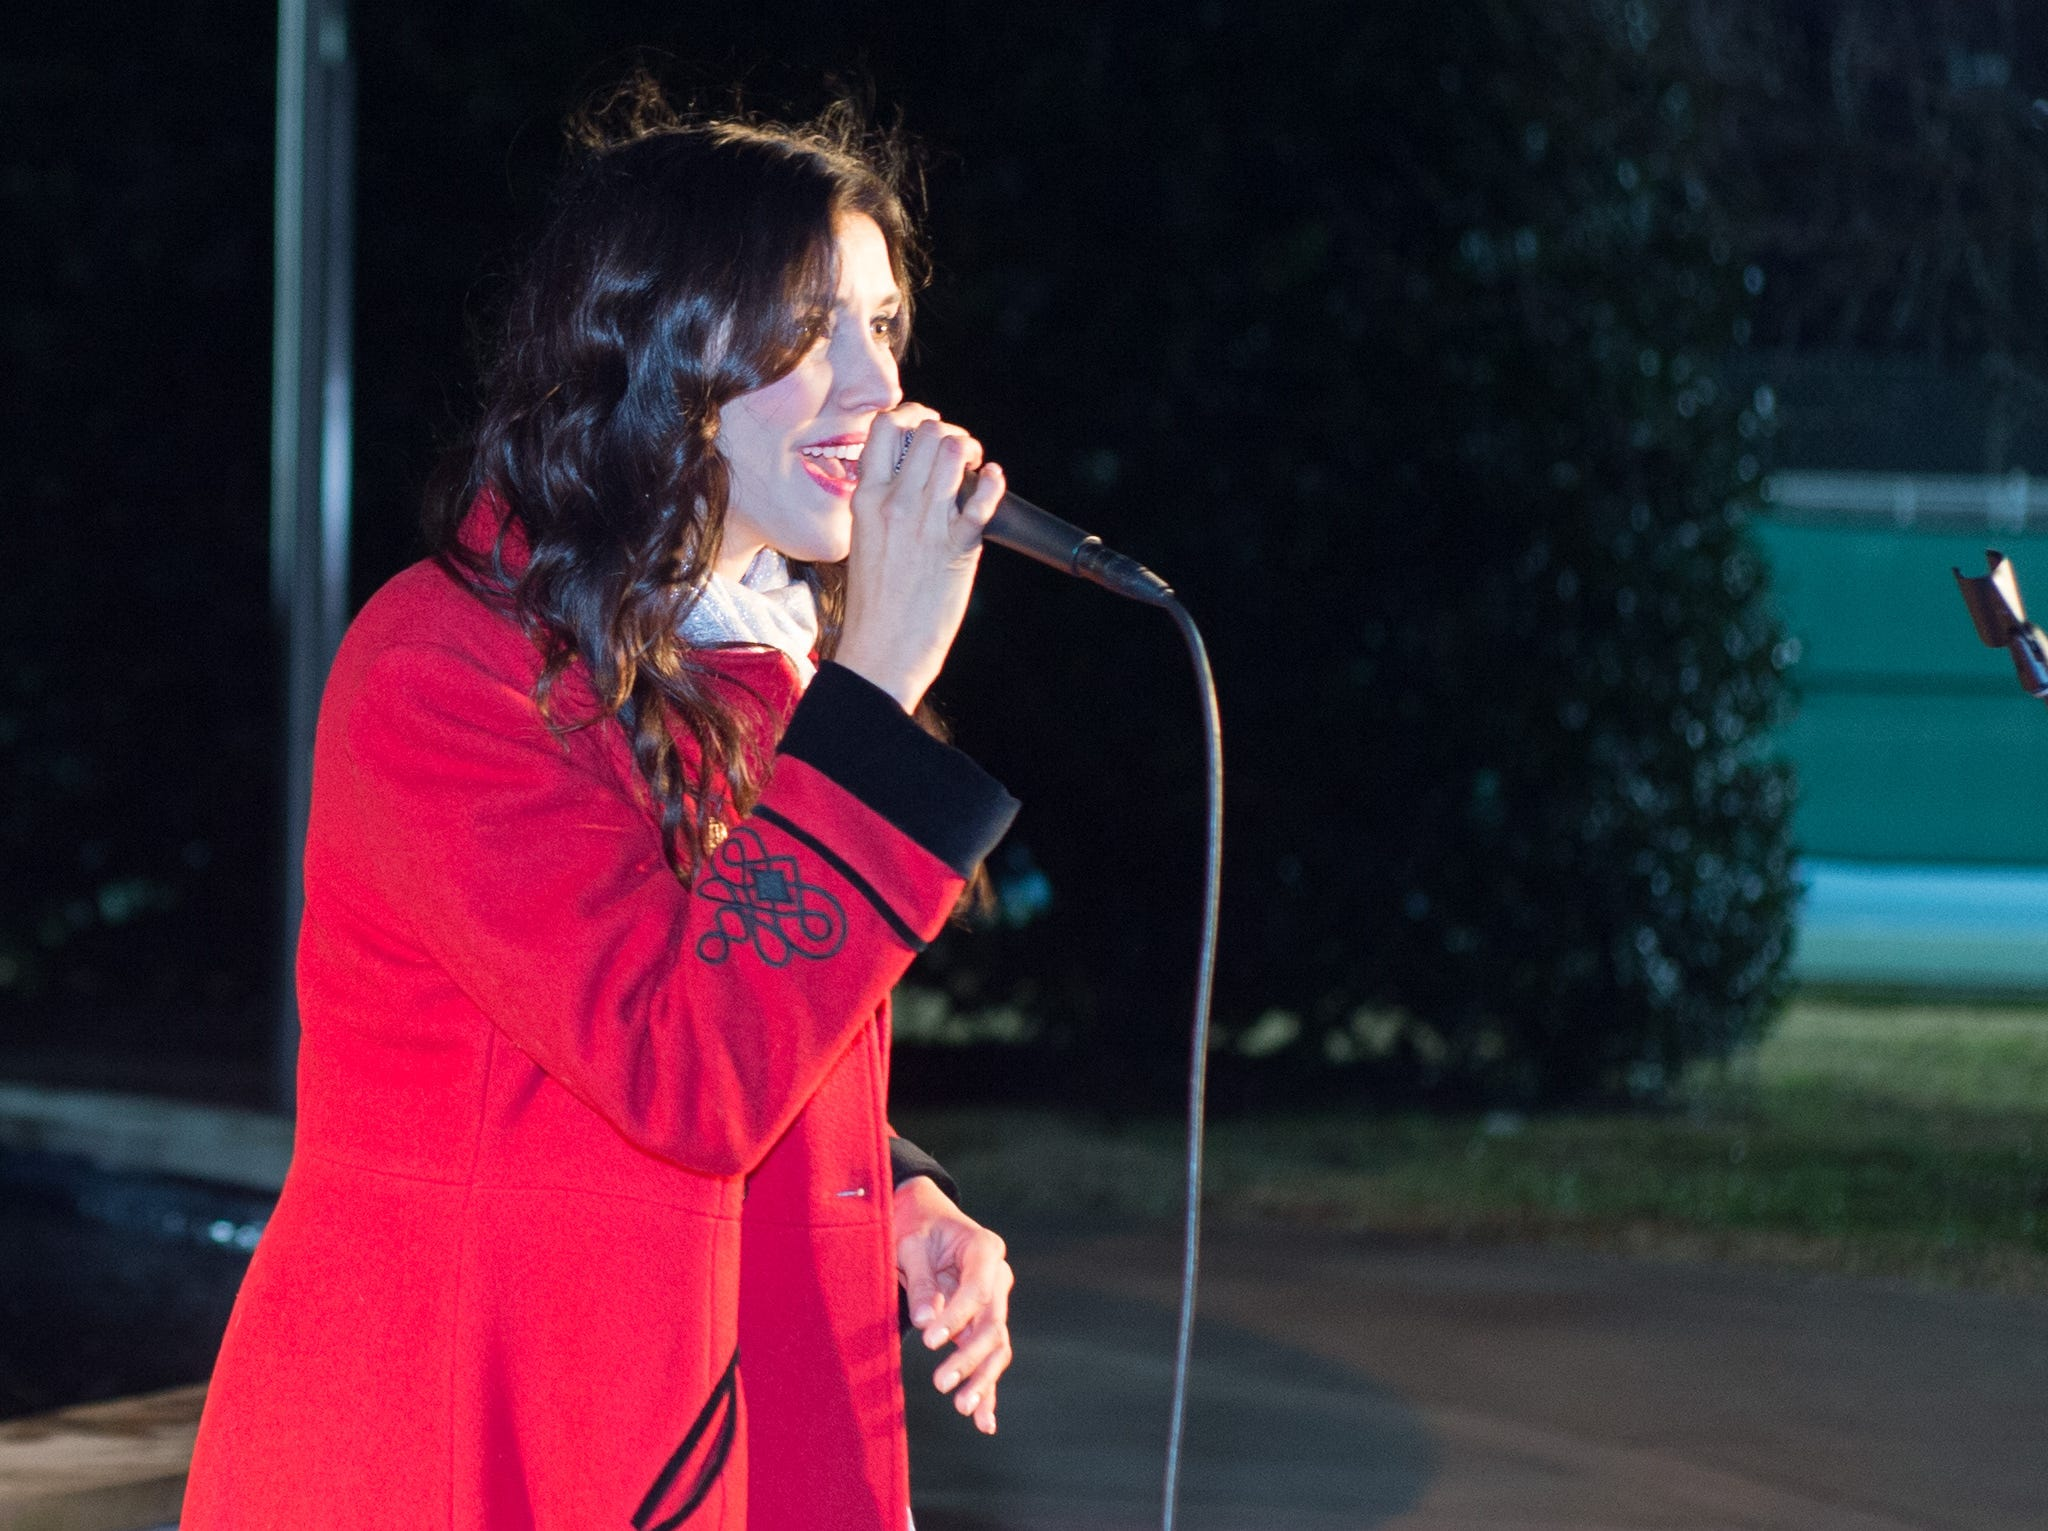 Crystal Day entertains the crowd during the Hendersonville HolidayFest Annual Tree Lighting Ceremony at Memorial Park on Sunday, Nov. 25.